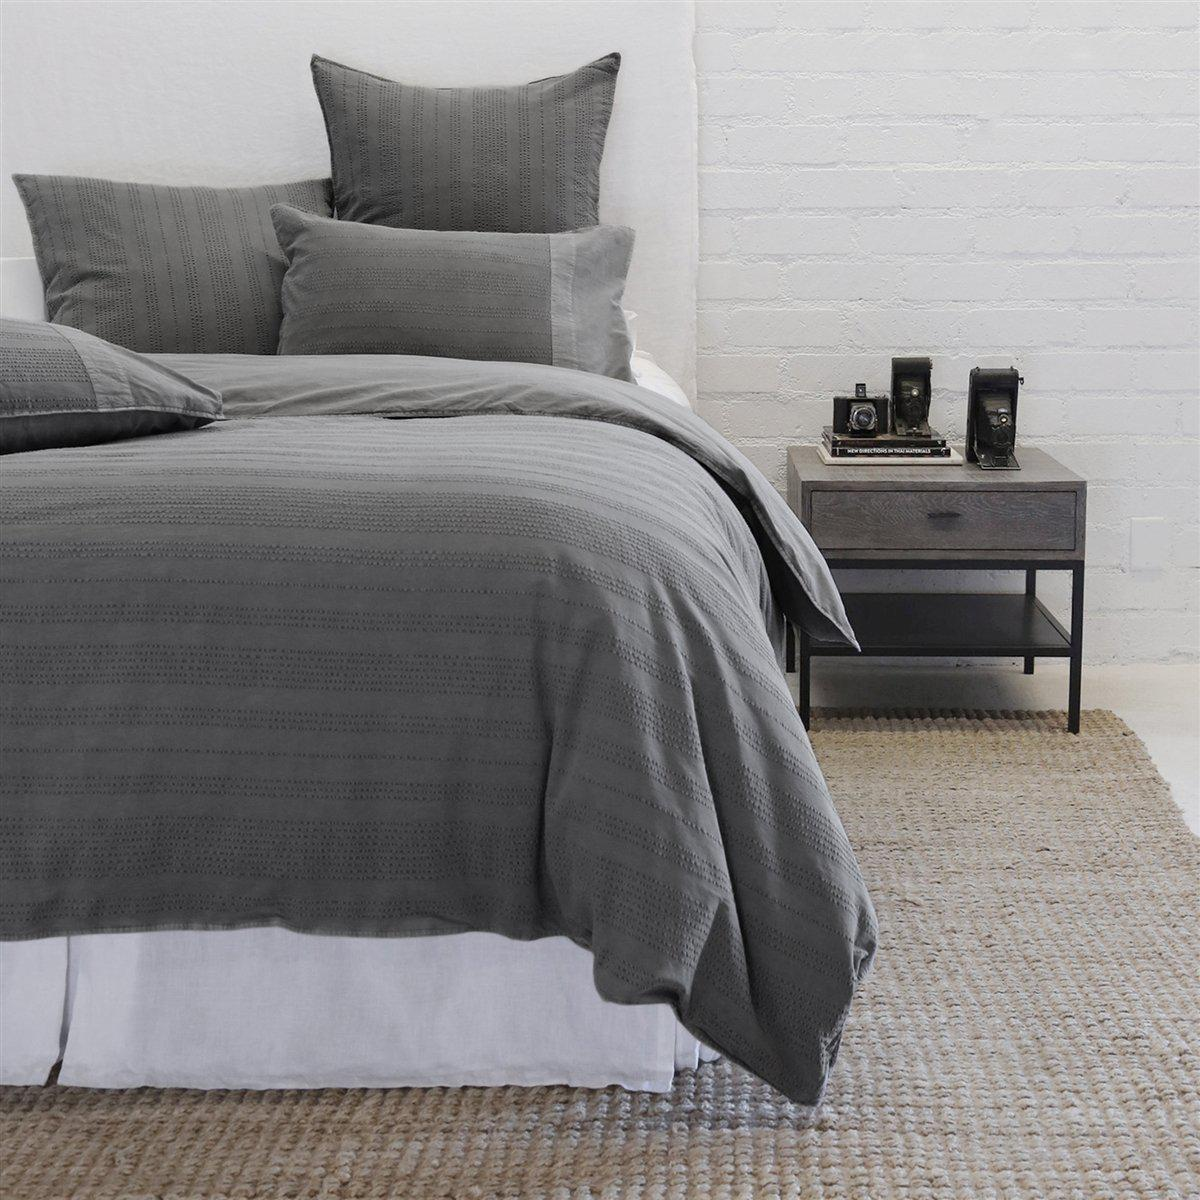 Quinn Duvet by Pom Pom at Home-Bed & Bath-Pom Pom-Queen-Grey-A Cottage in the City